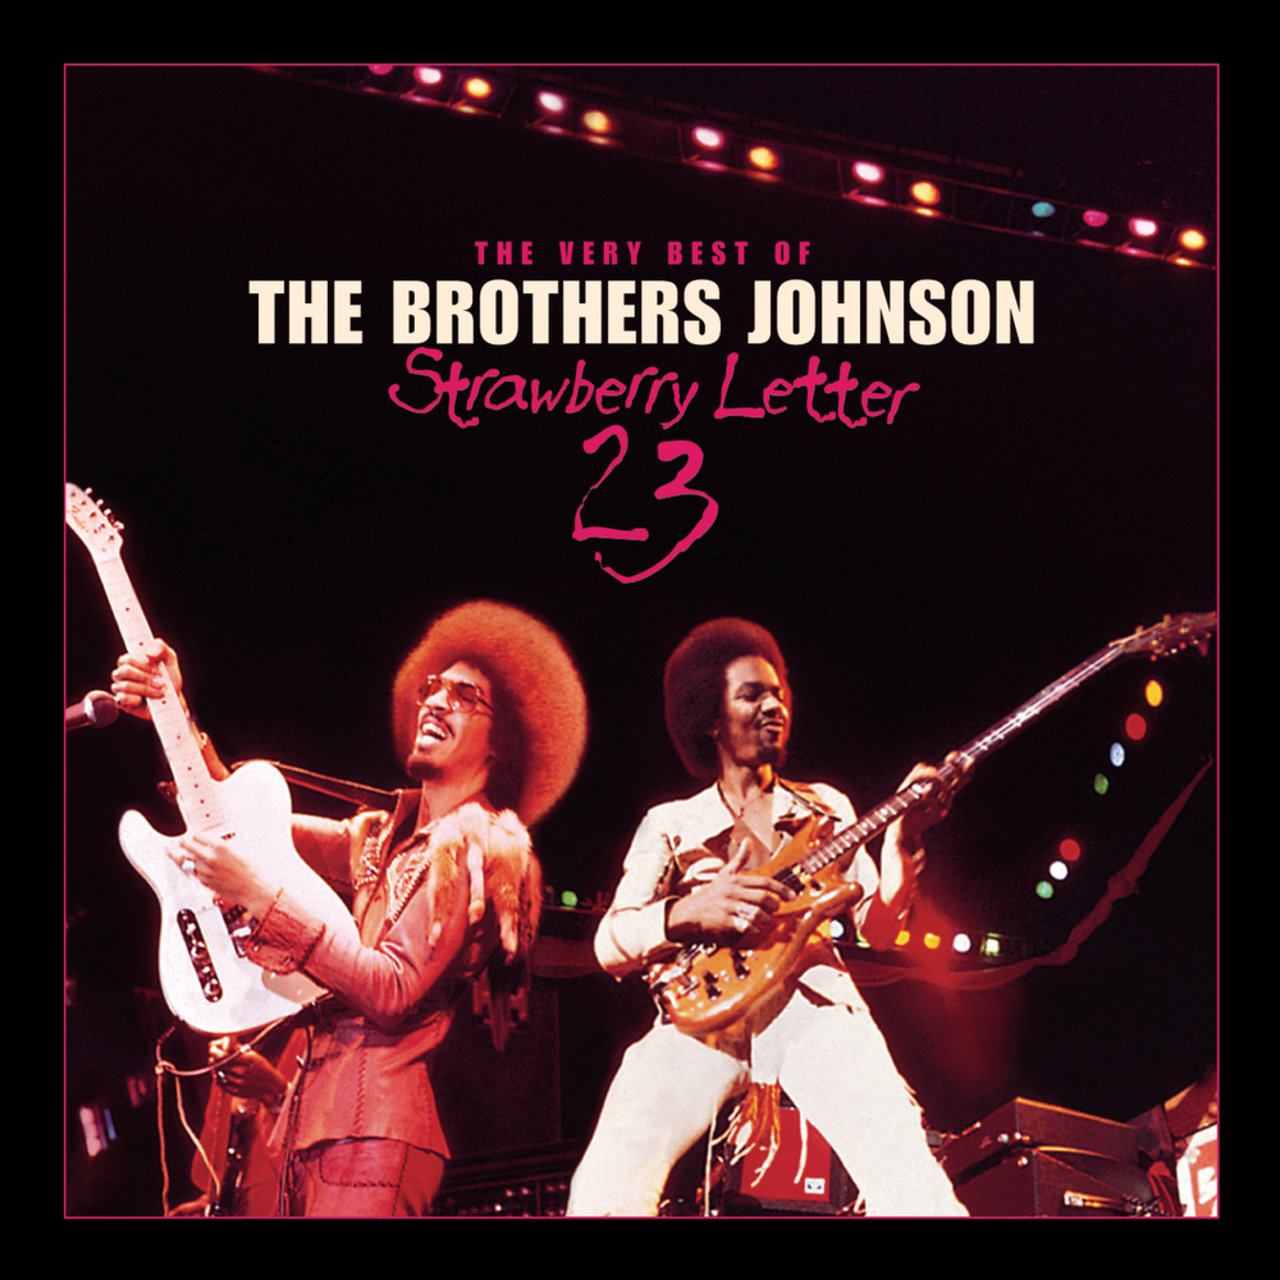 Listen to Strawberry Letter 23/The Very Best Of The Brothers